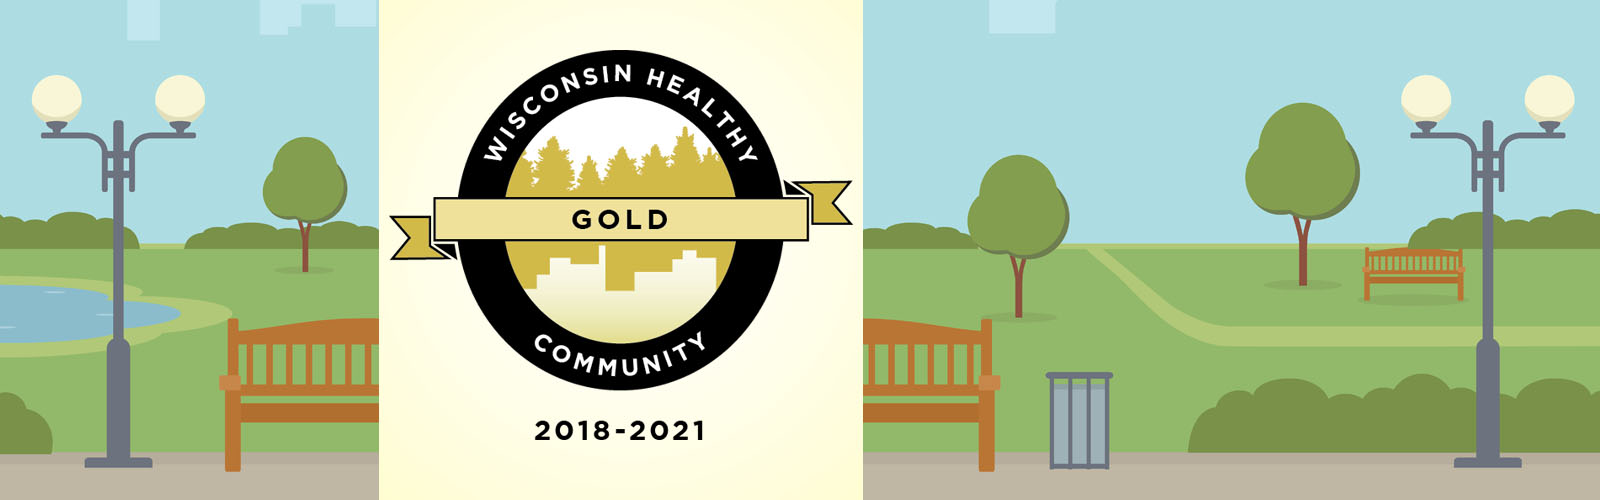 Fort Atkinson is a Gold community.